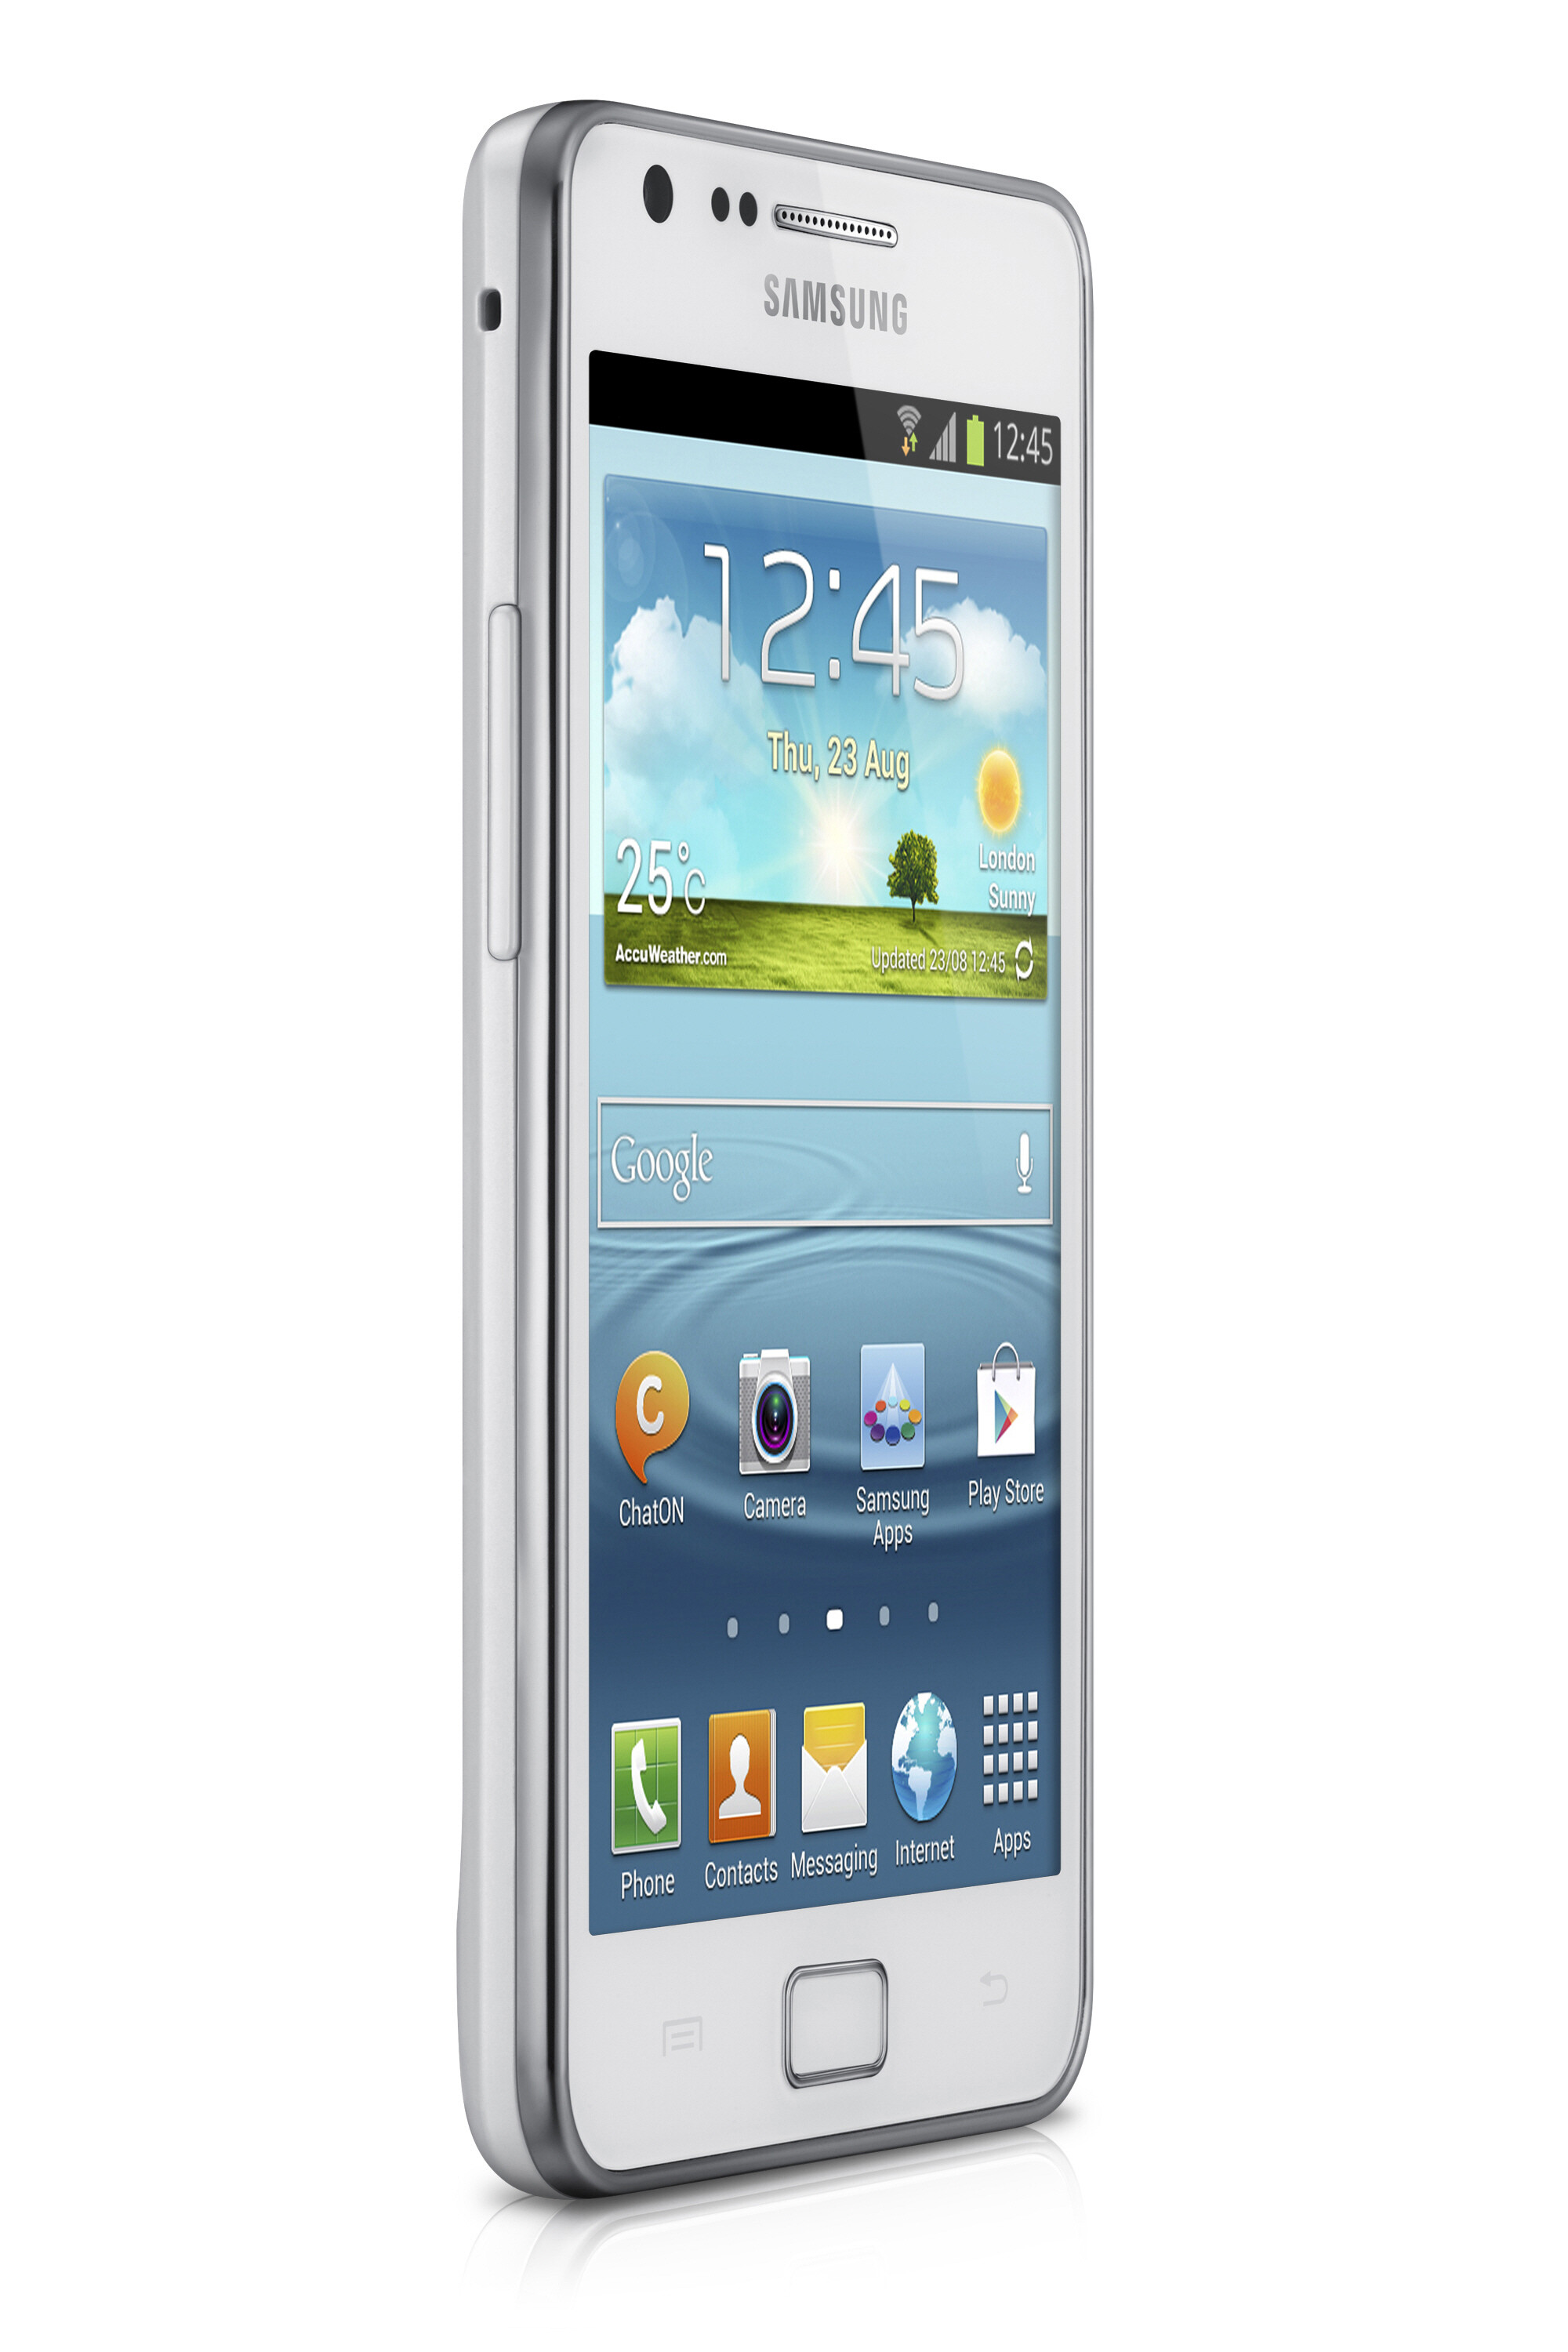 Spanish user manual: Samsung Galaxy S II T-Mobile Support